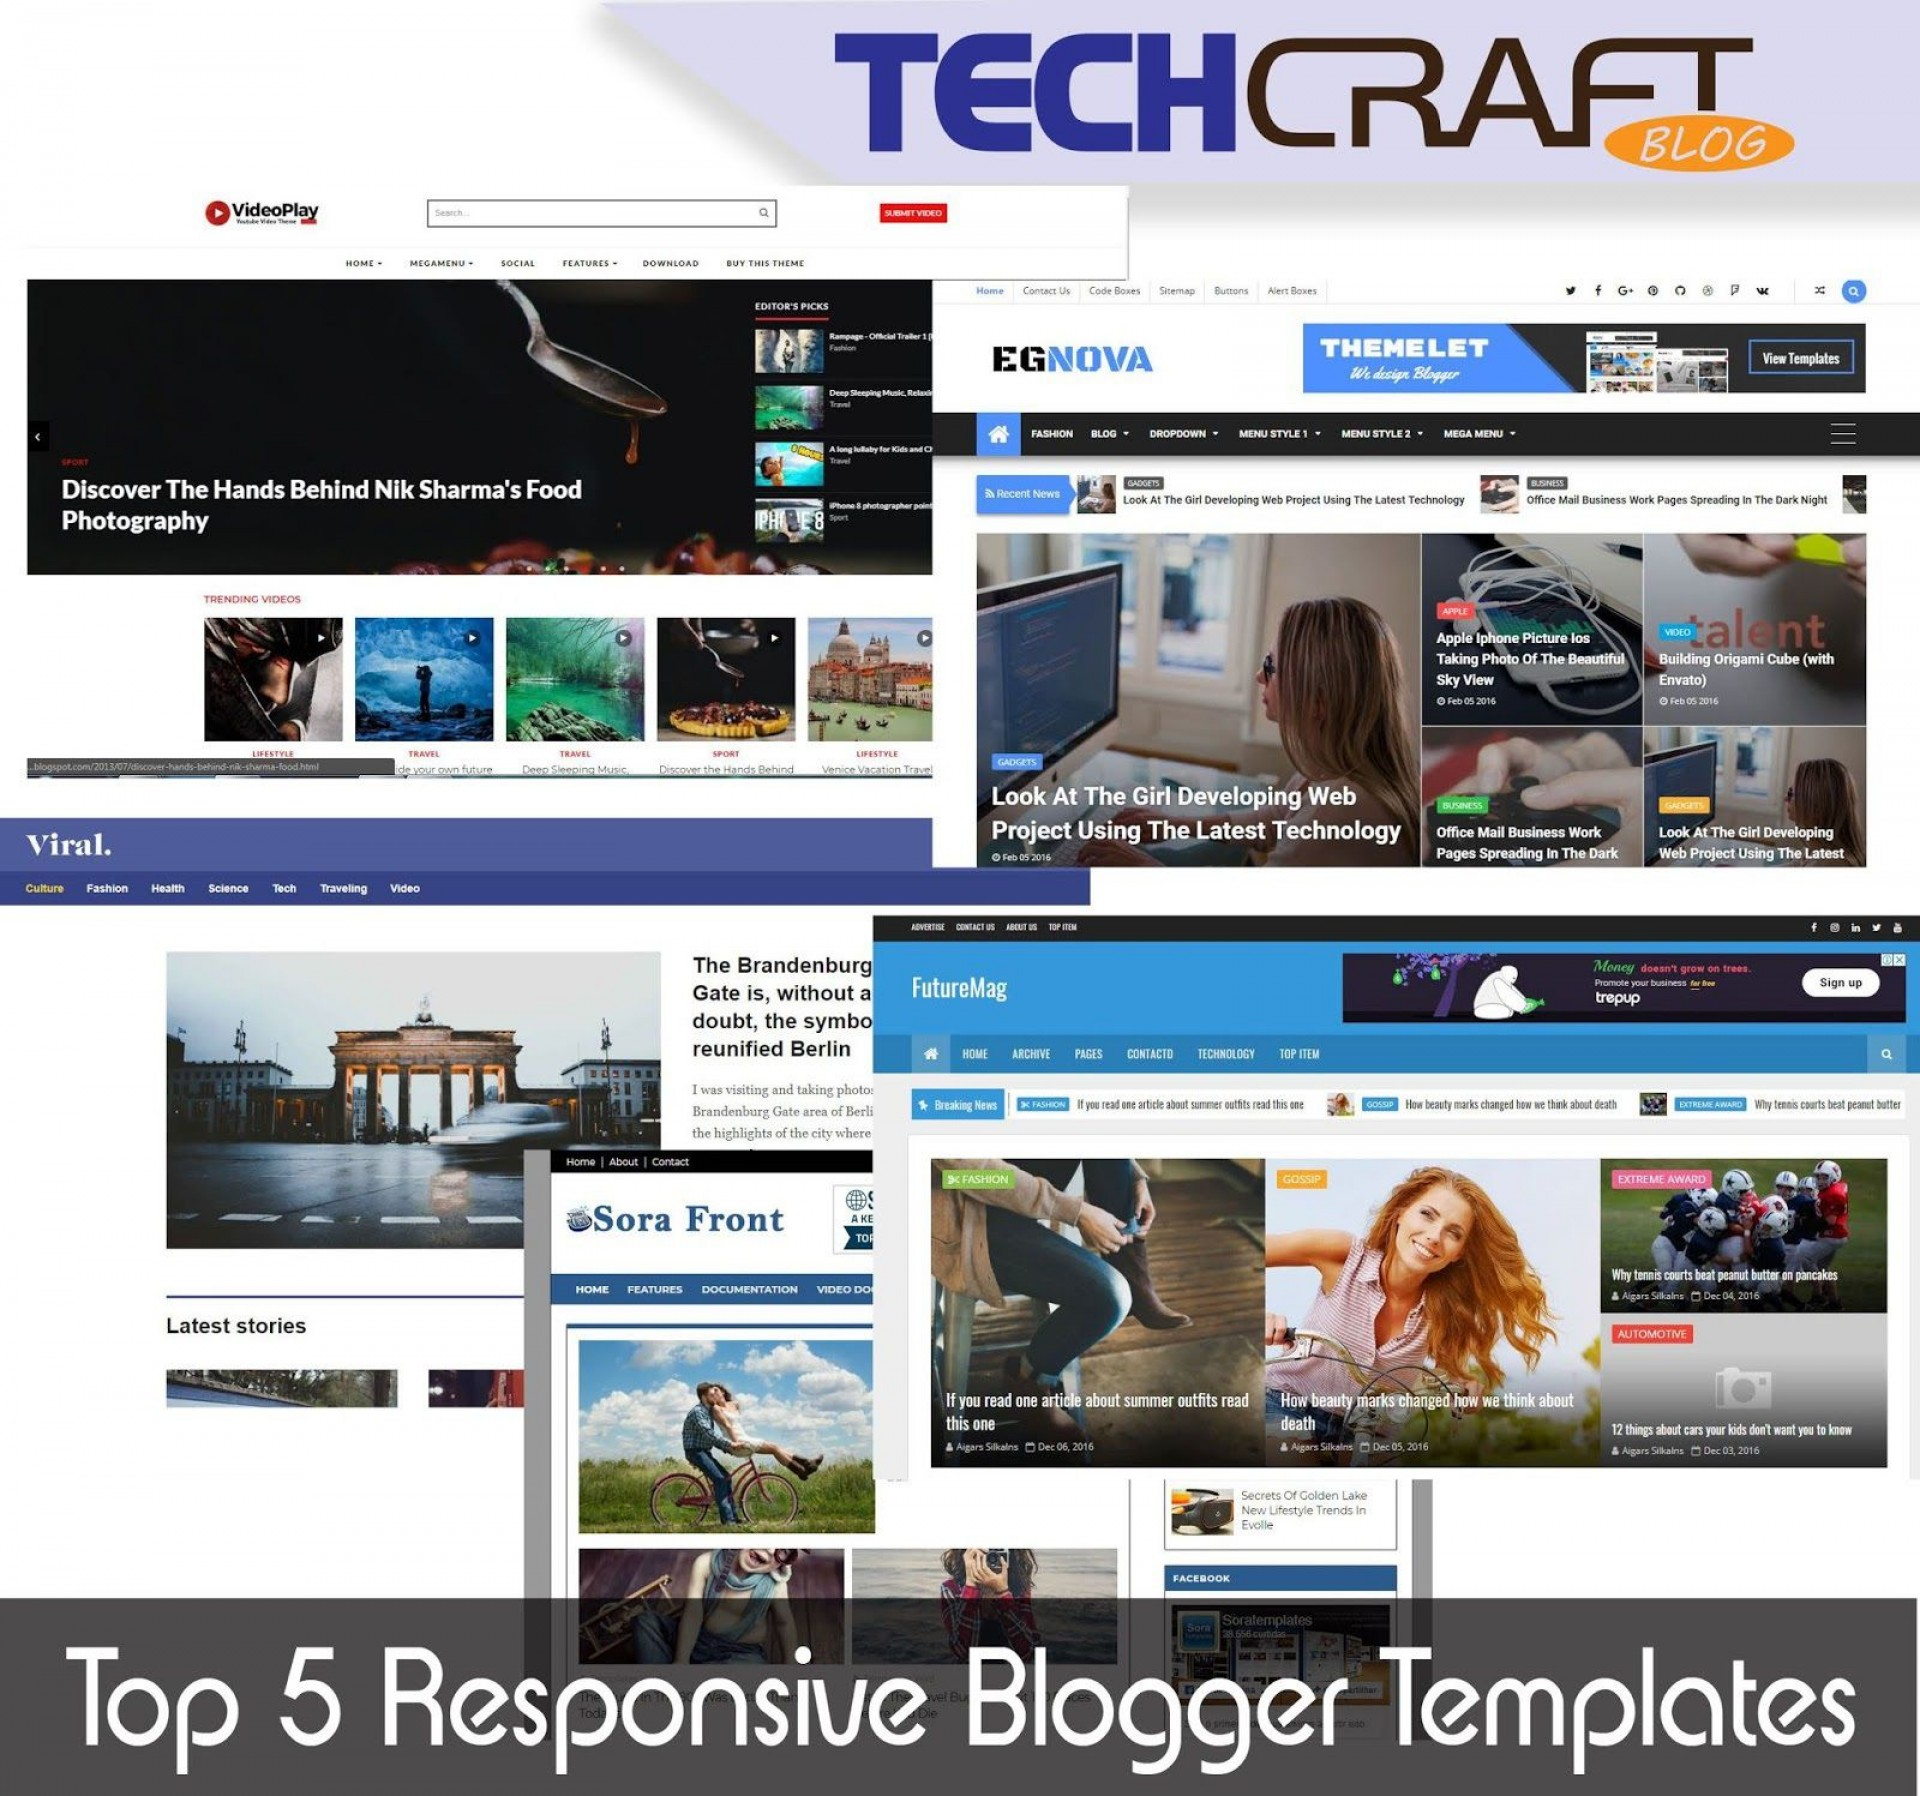 007 Impressive Download Free Responsive Blogger Template Picture  Galaxymag - New & Magazine Newspaper Video1920